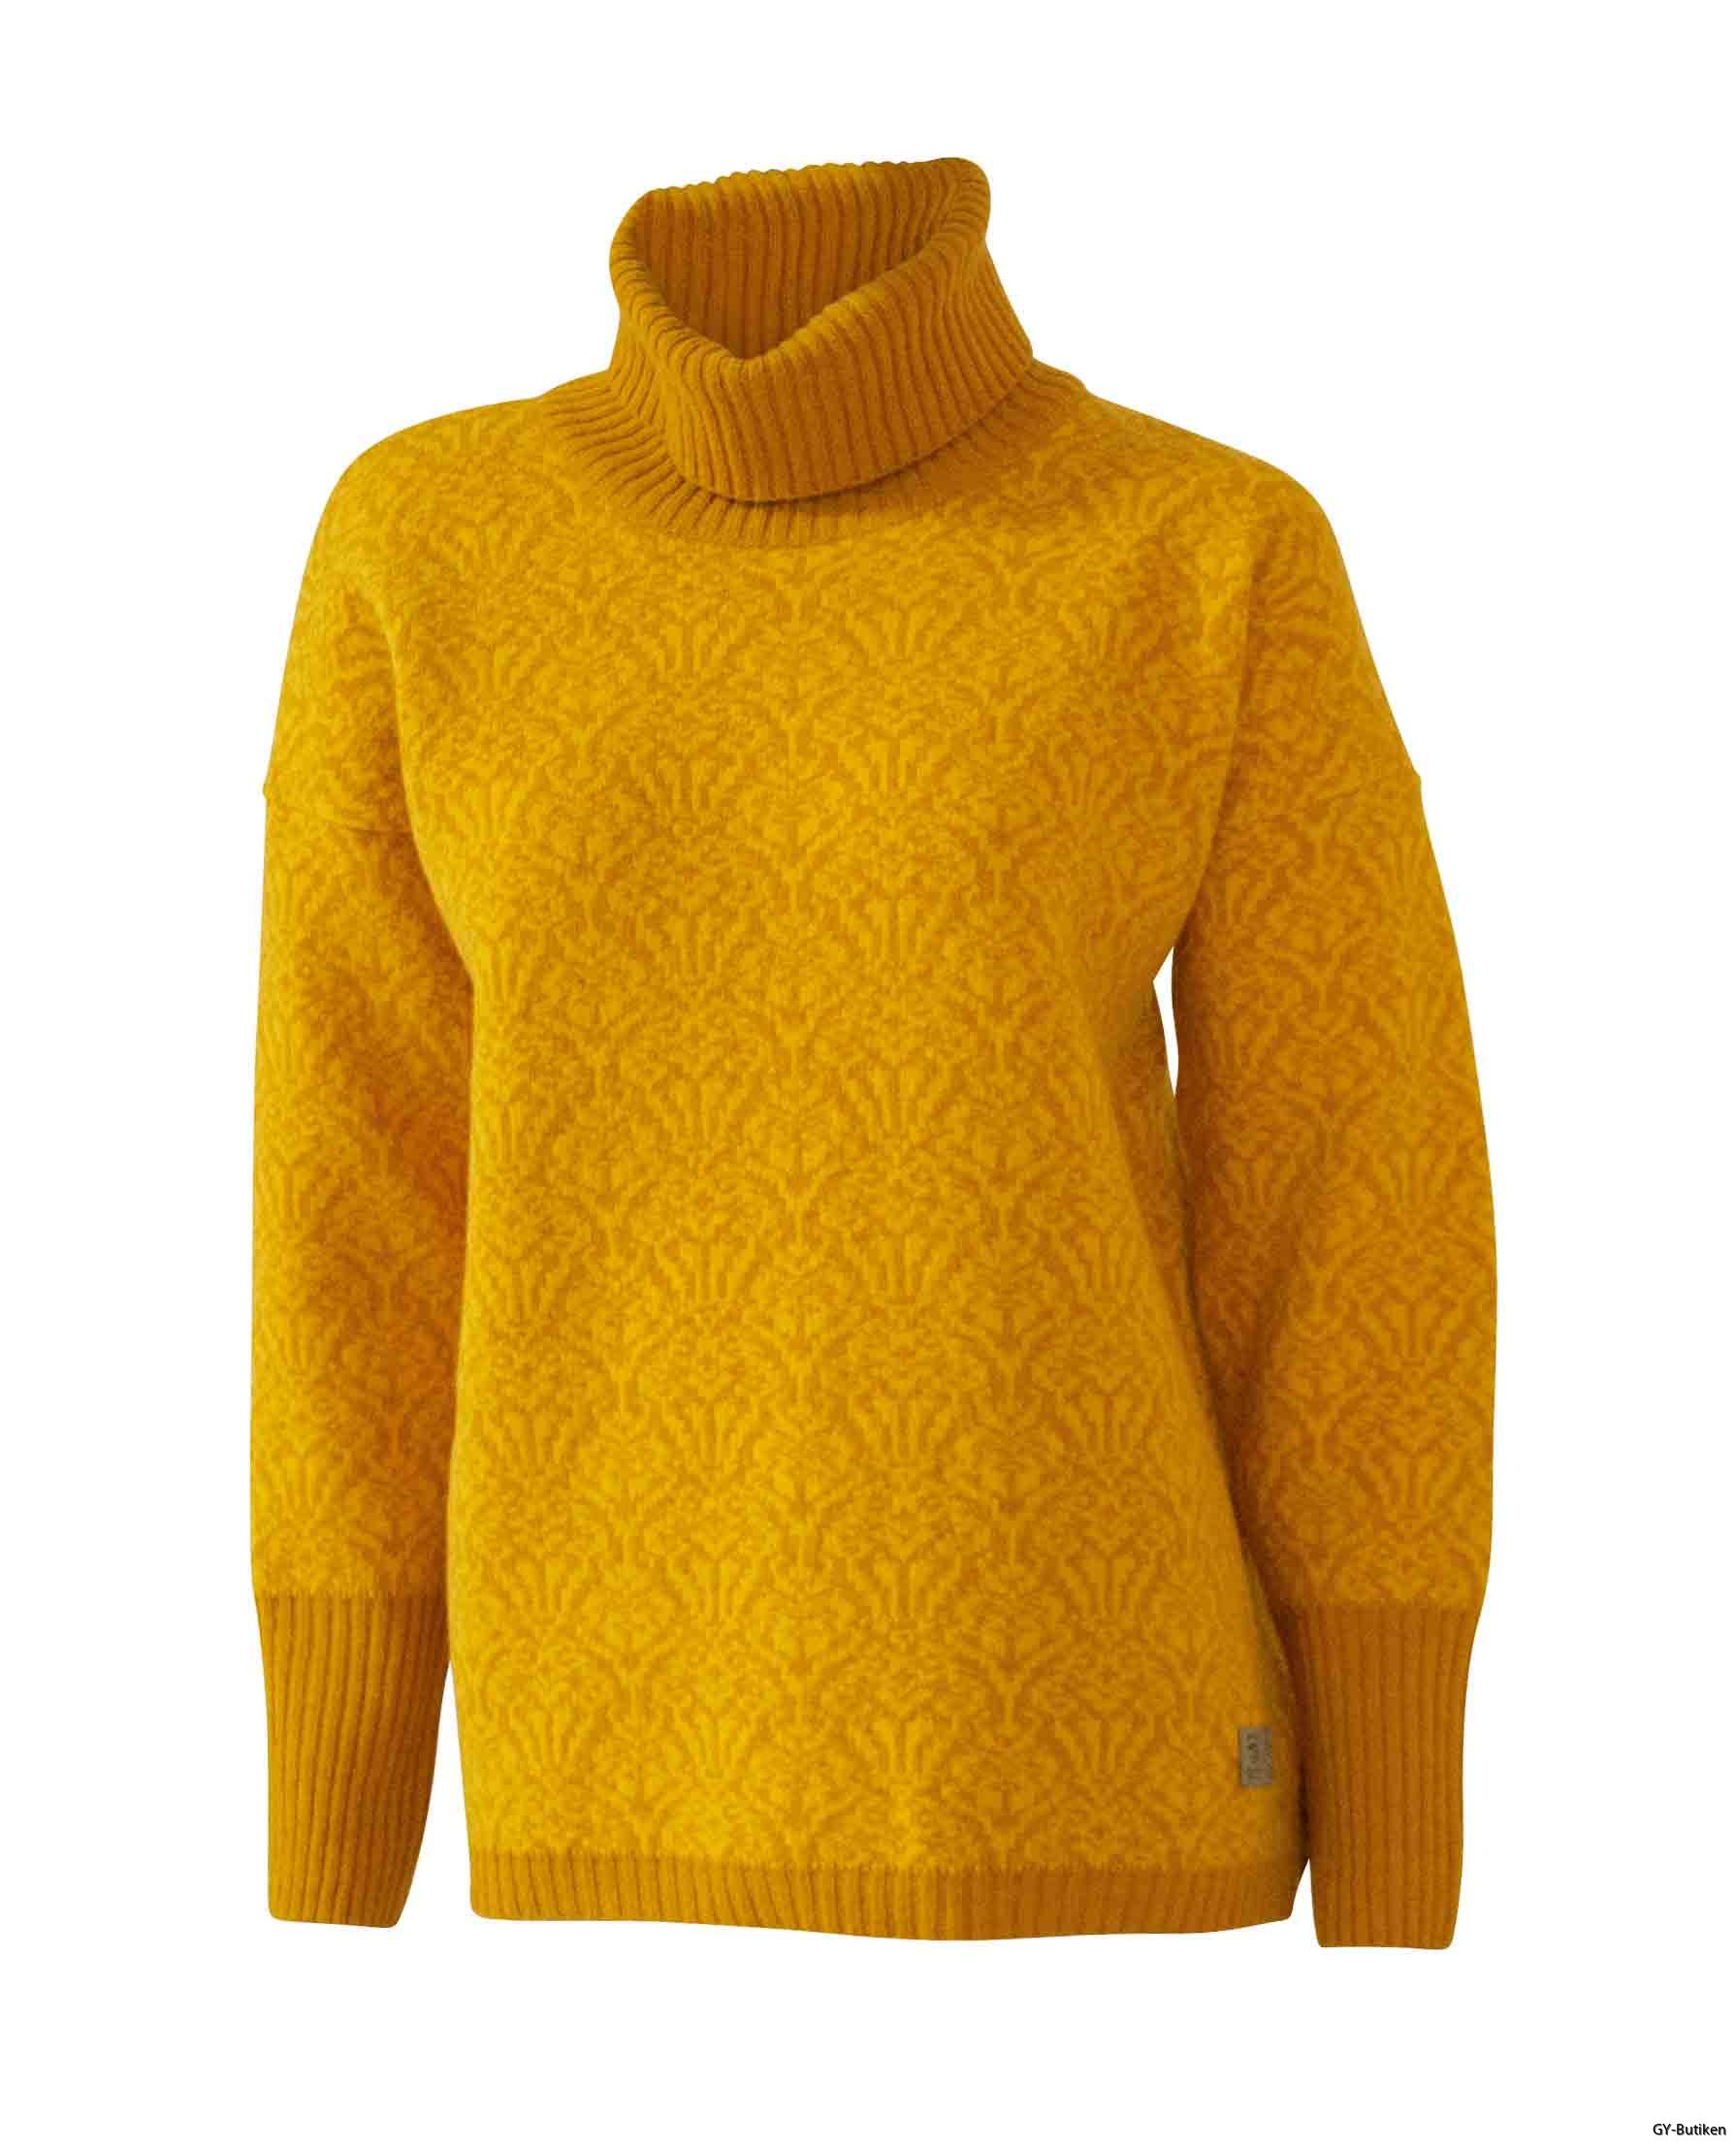 GY_Korrebo_Sweater_072